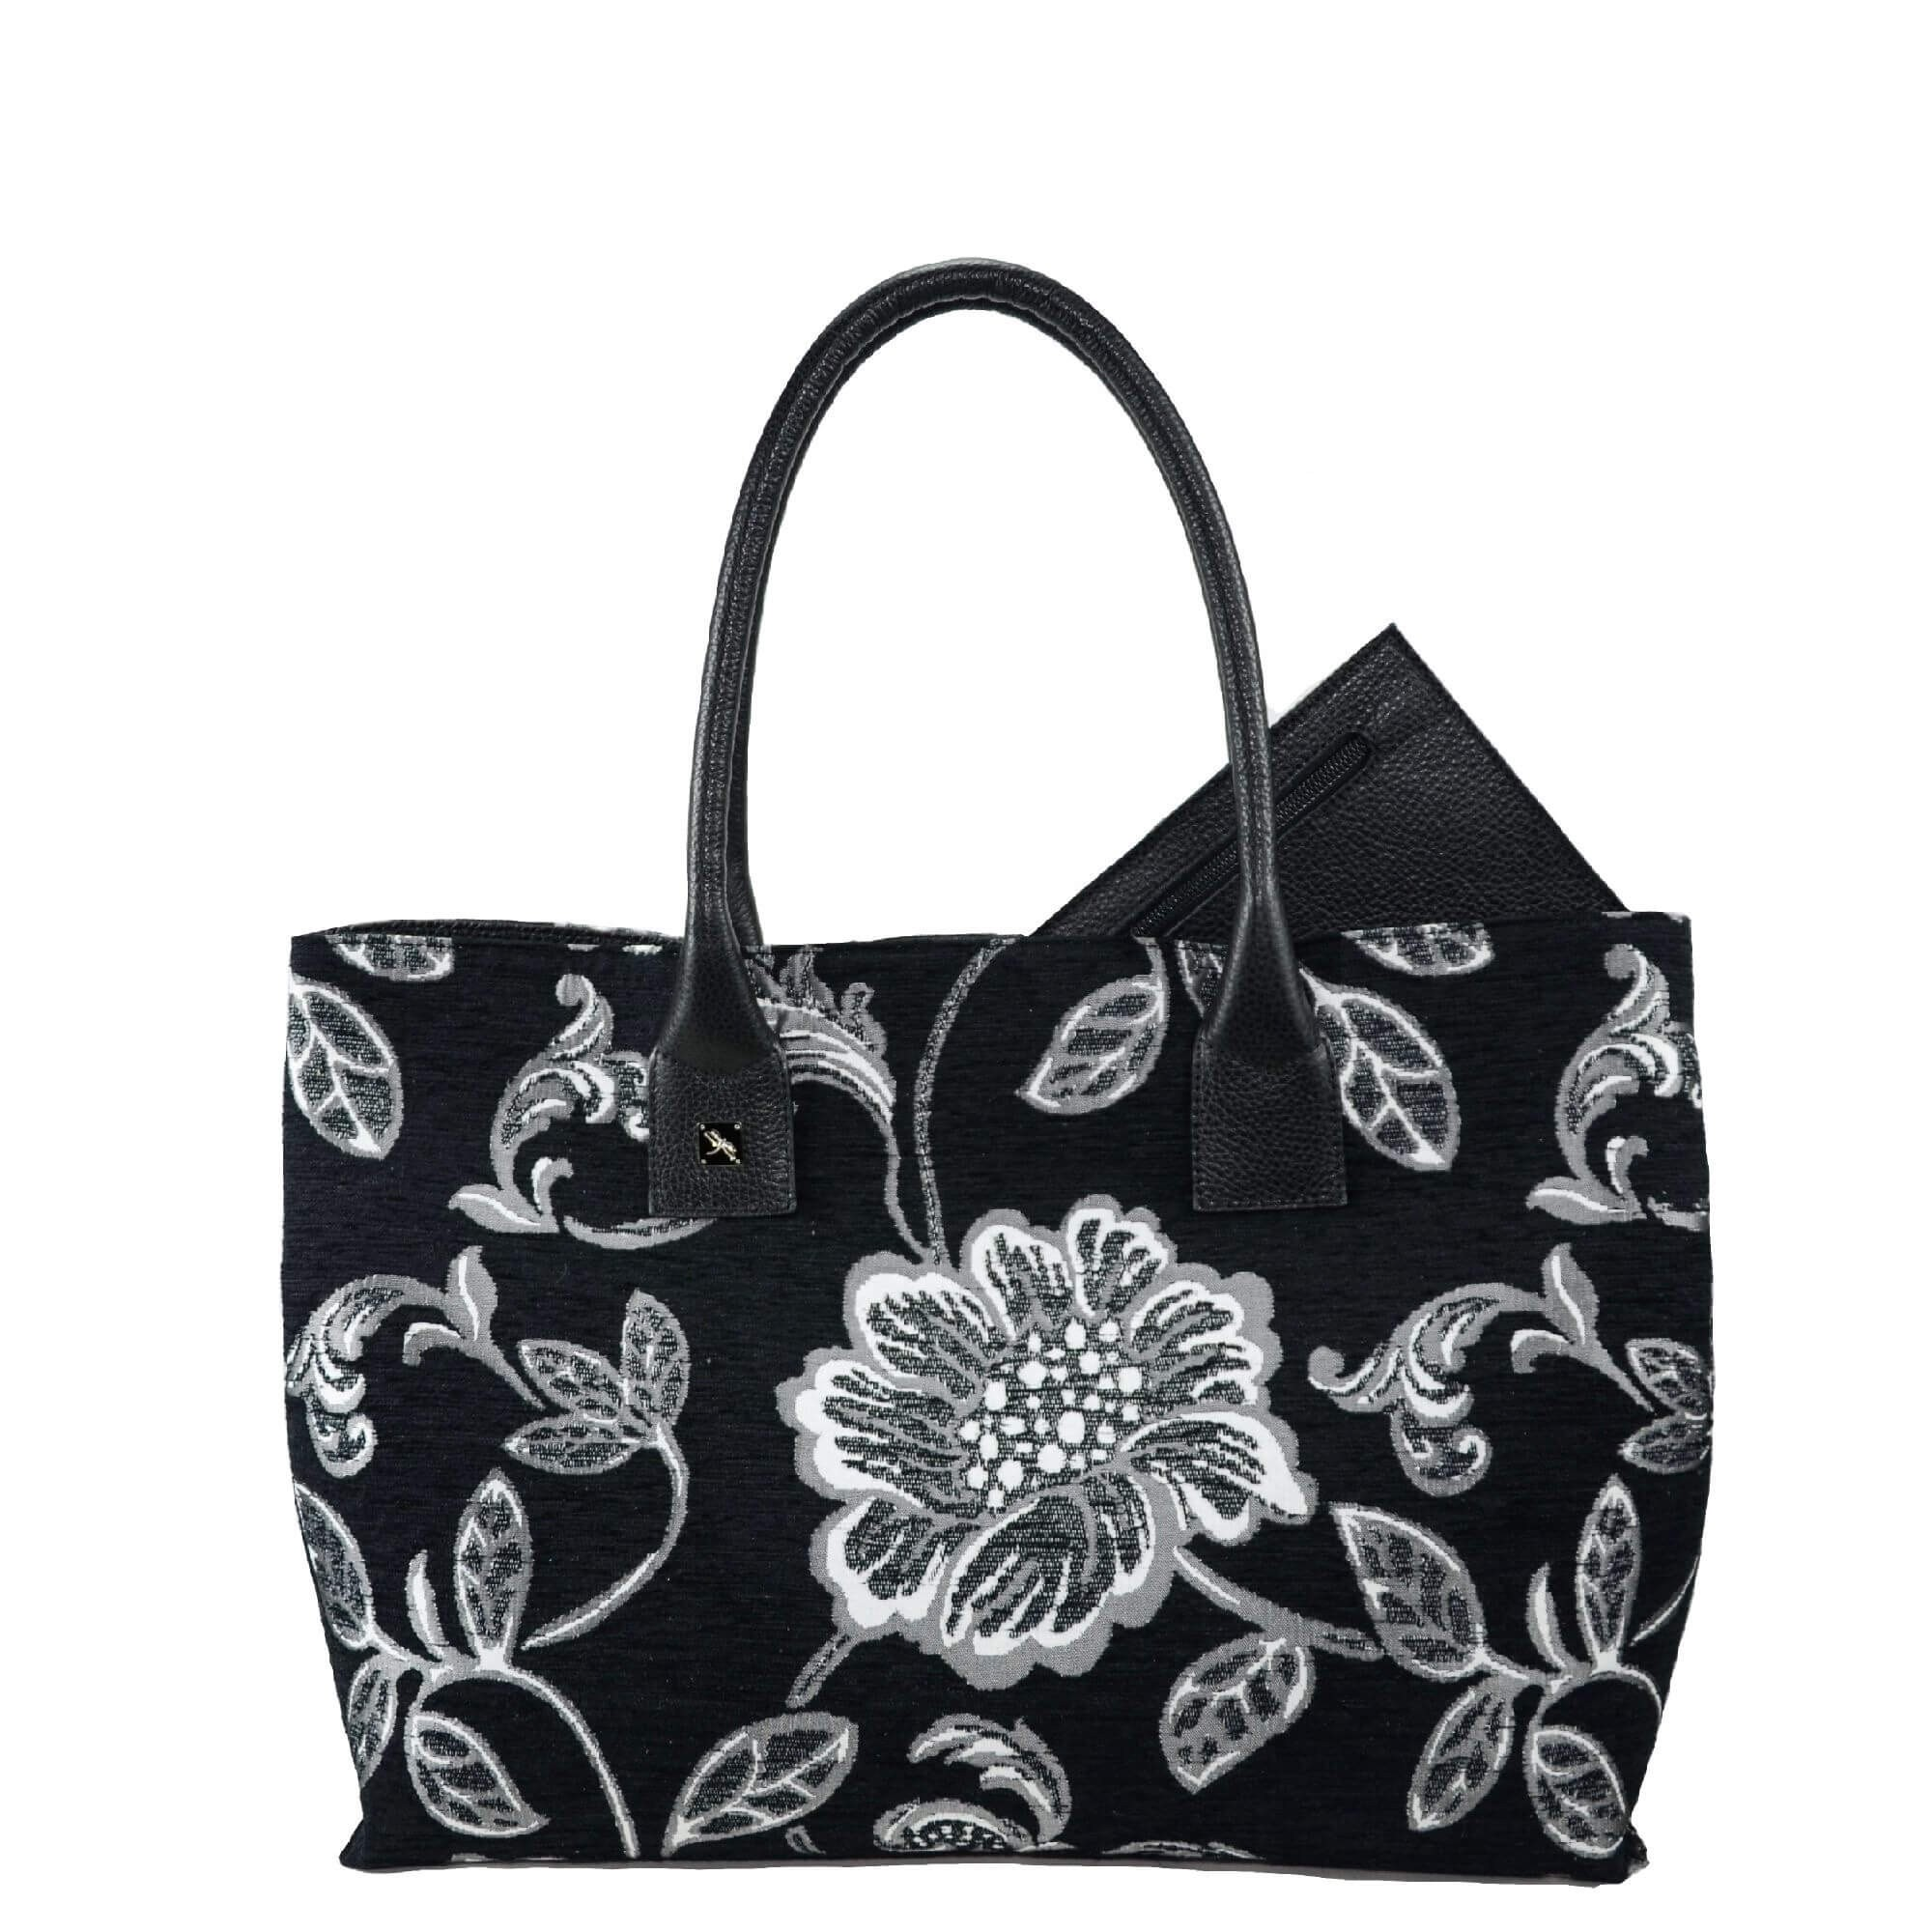 Flower Tote bag. Natalia L